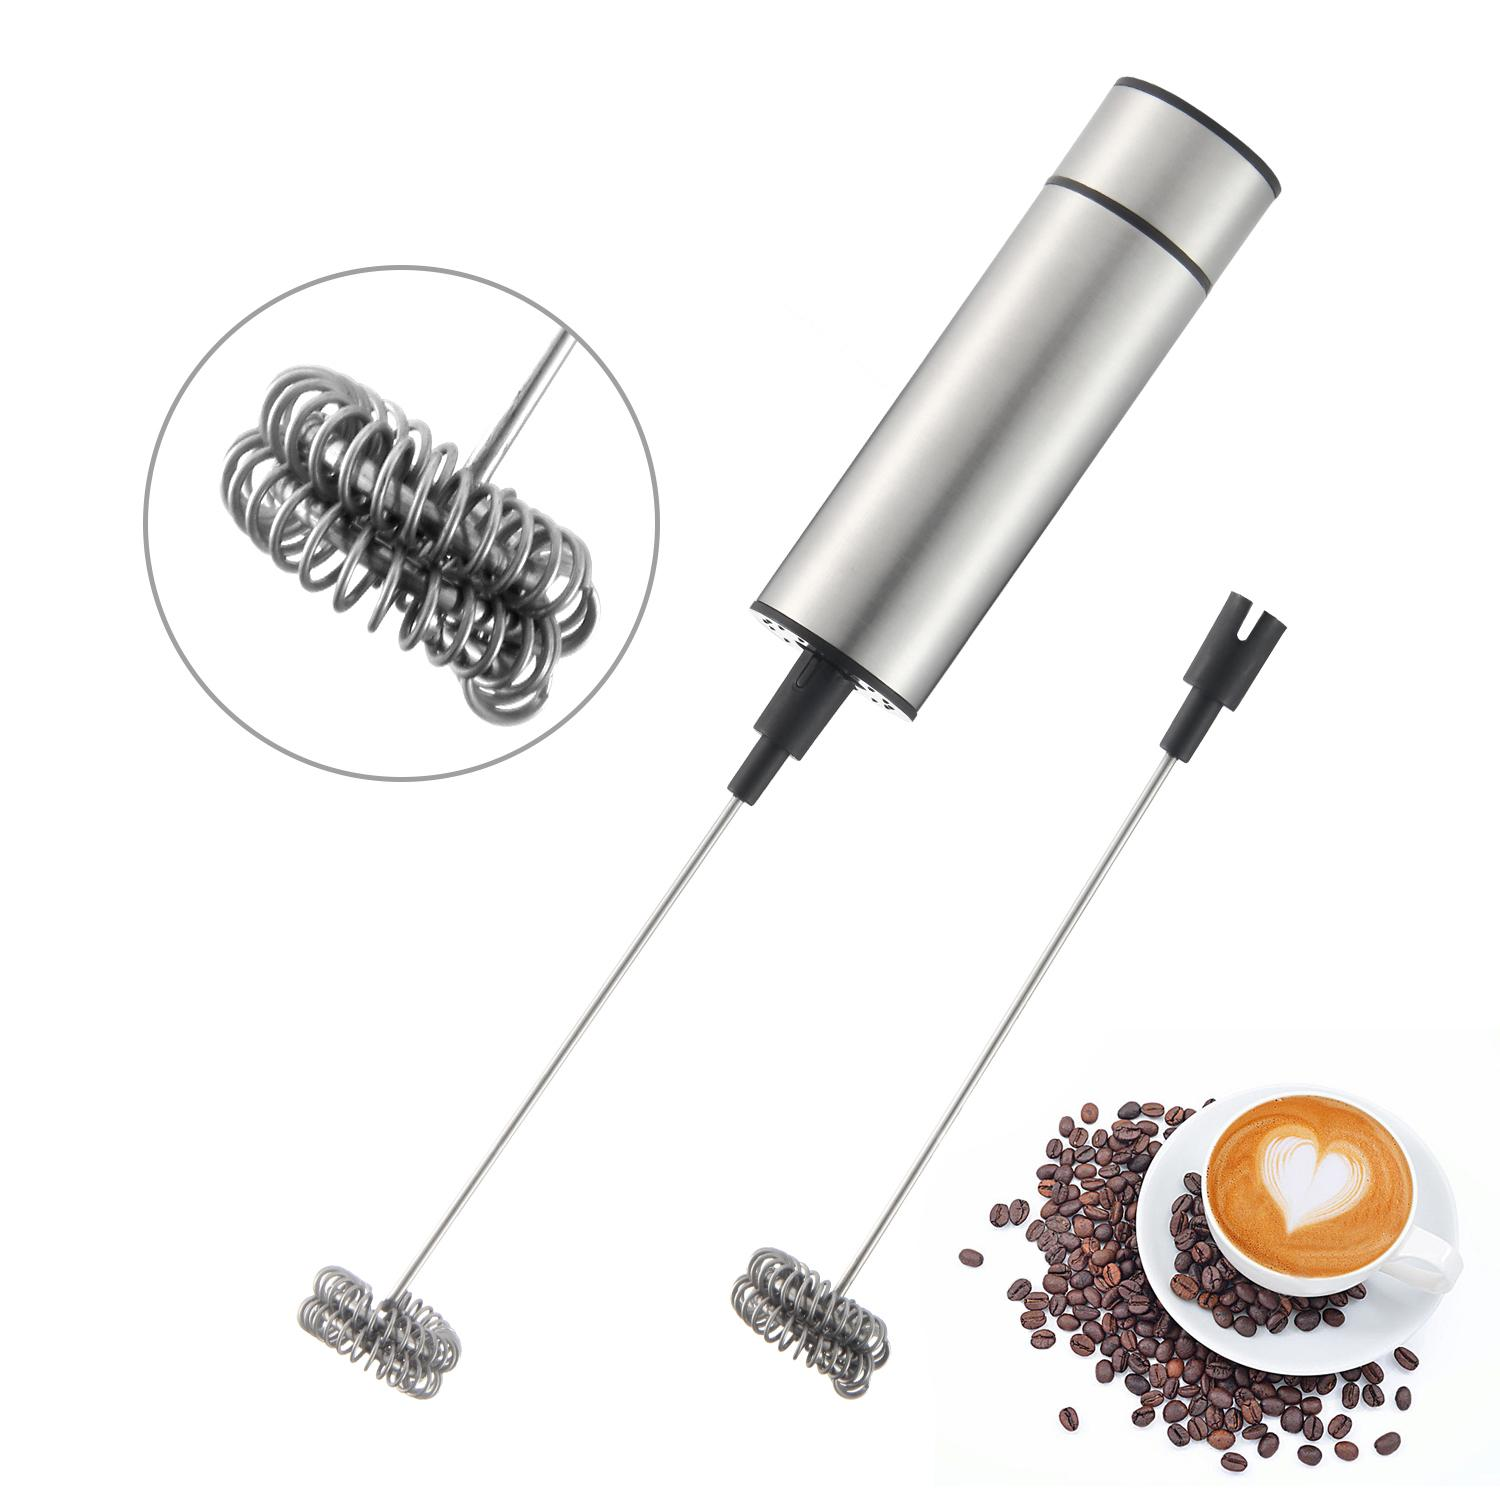 Outflety Milk Frother Handheld Electric Foam Maker, Powerful Drink Mixer With Two Detachable Double Spring Whisk Head For Kitchen,coffee Shop By Outflety.